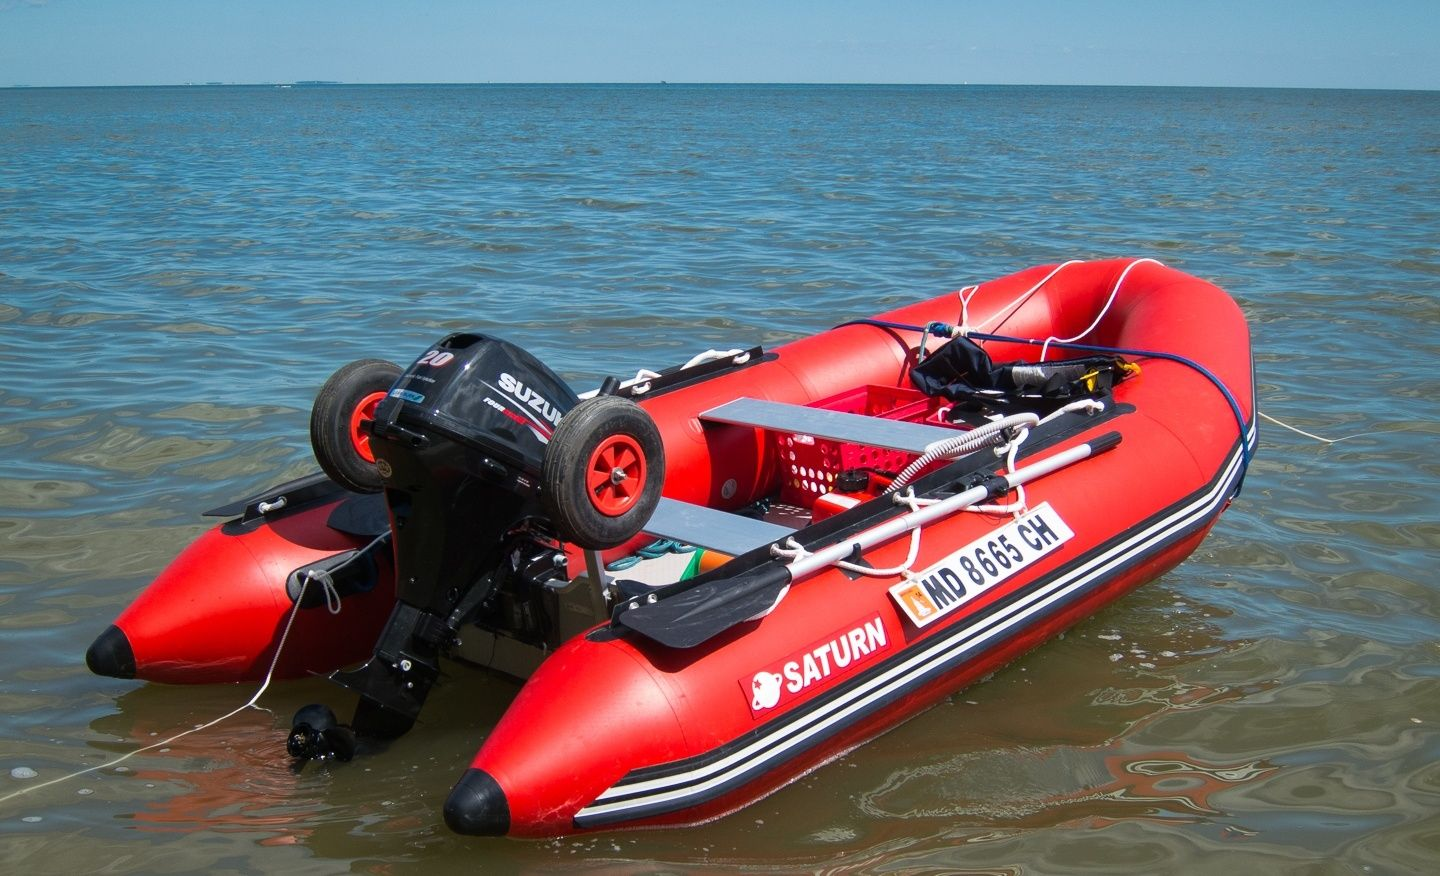 Saturn Inflatable Boat Sd365 Inflatable Rafts Inflatable Boat Boat